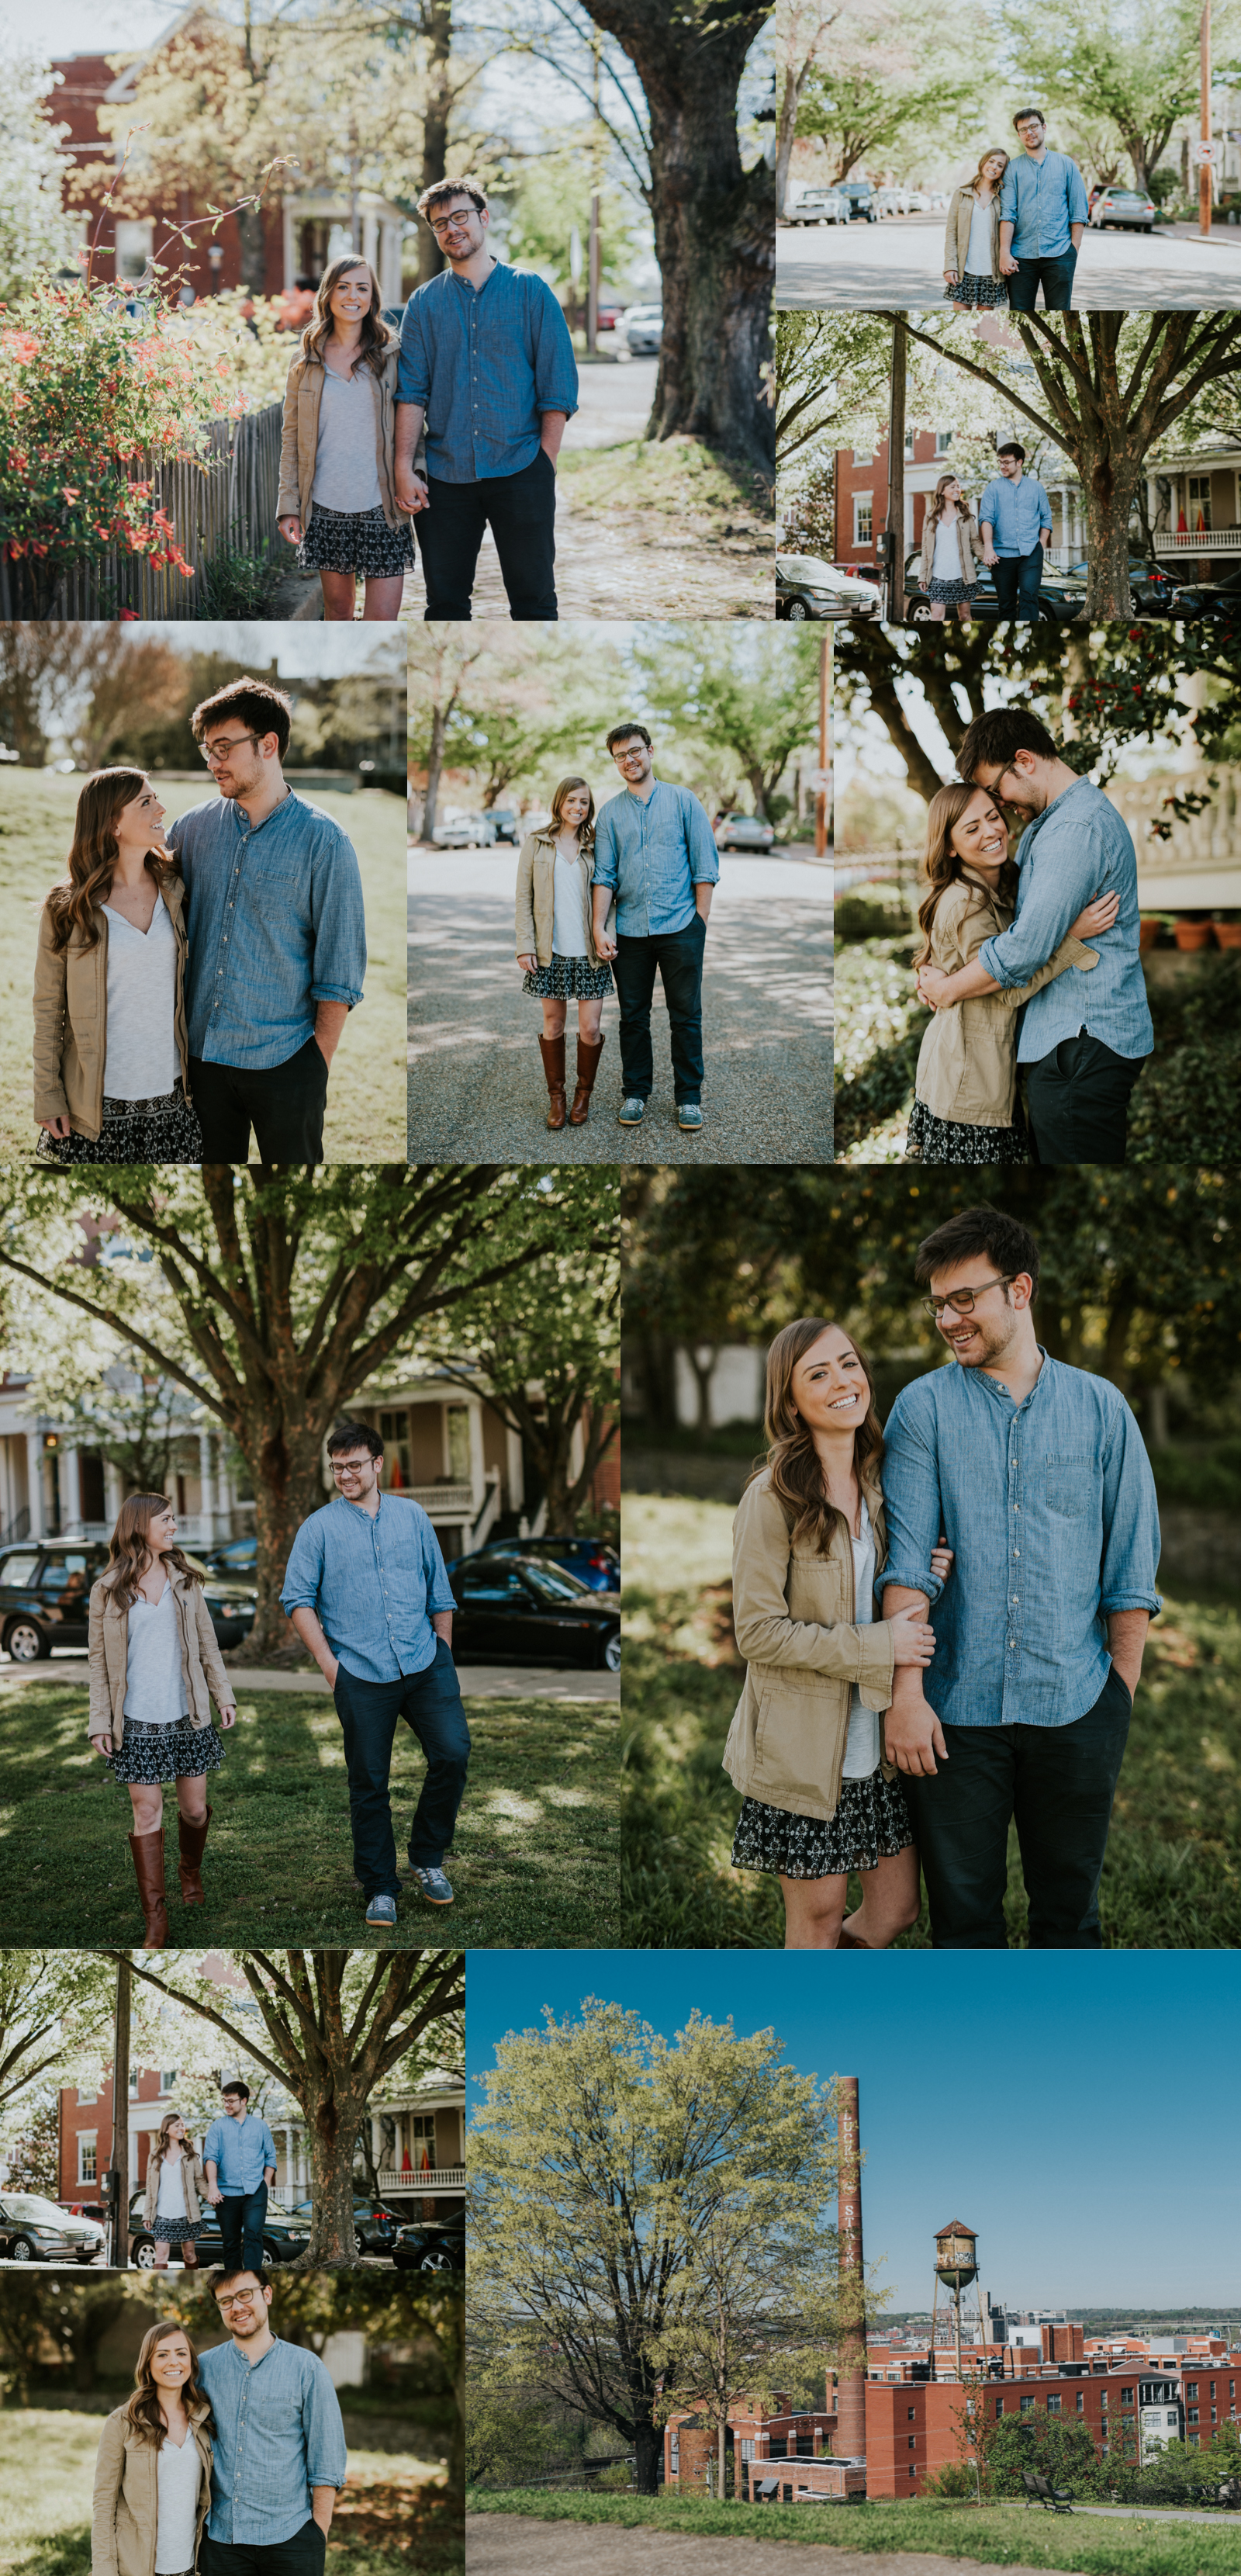 Libby Hill, Richmond Virginia engagement and wedding photographer.